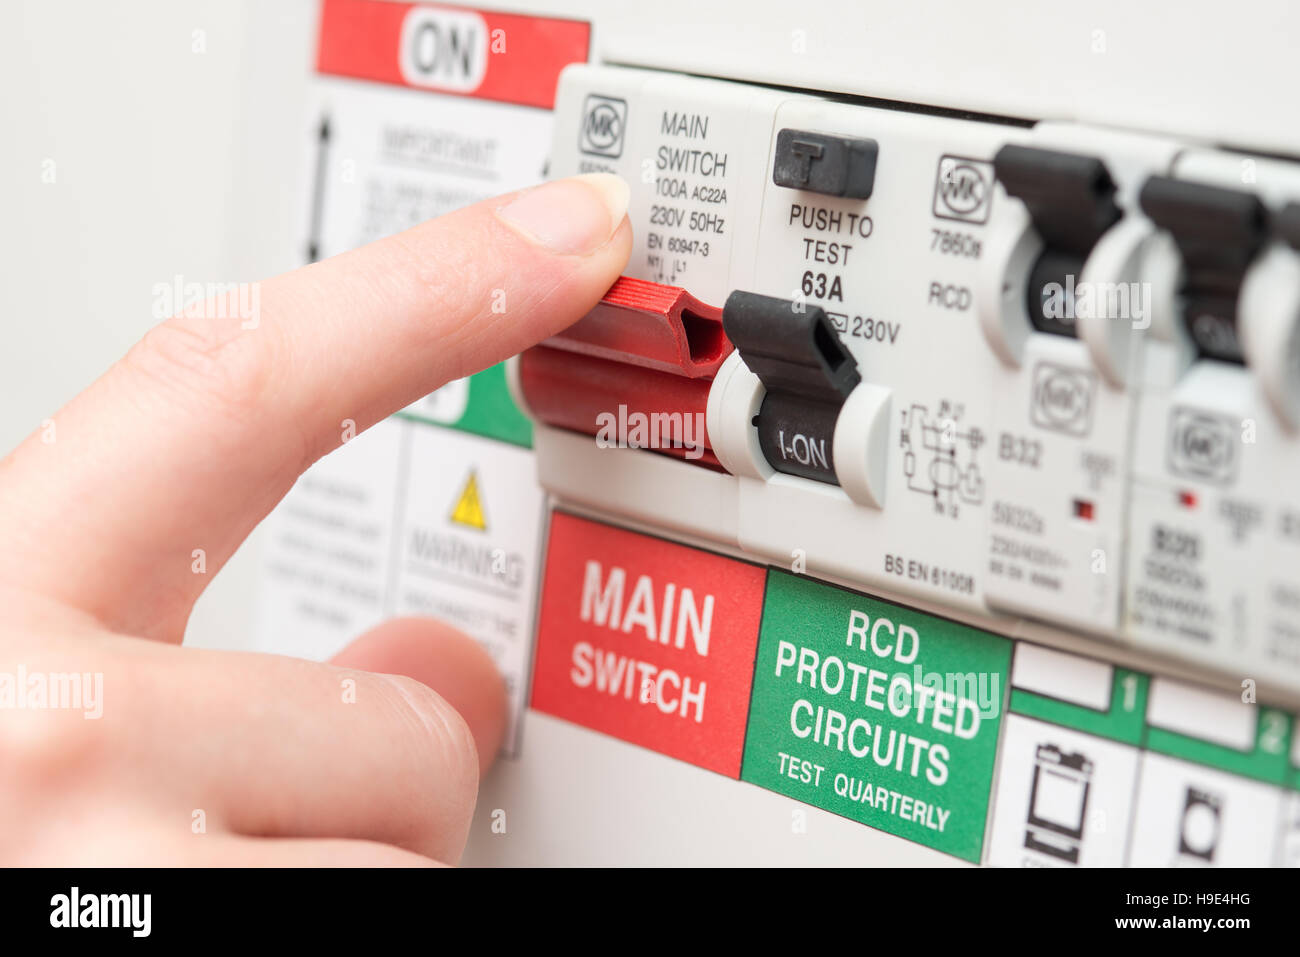 Circuit Breaker Domestic Stock Photos Breakers All About Alert A Finger Is To Switch Off Large Red Mains On An Rcd